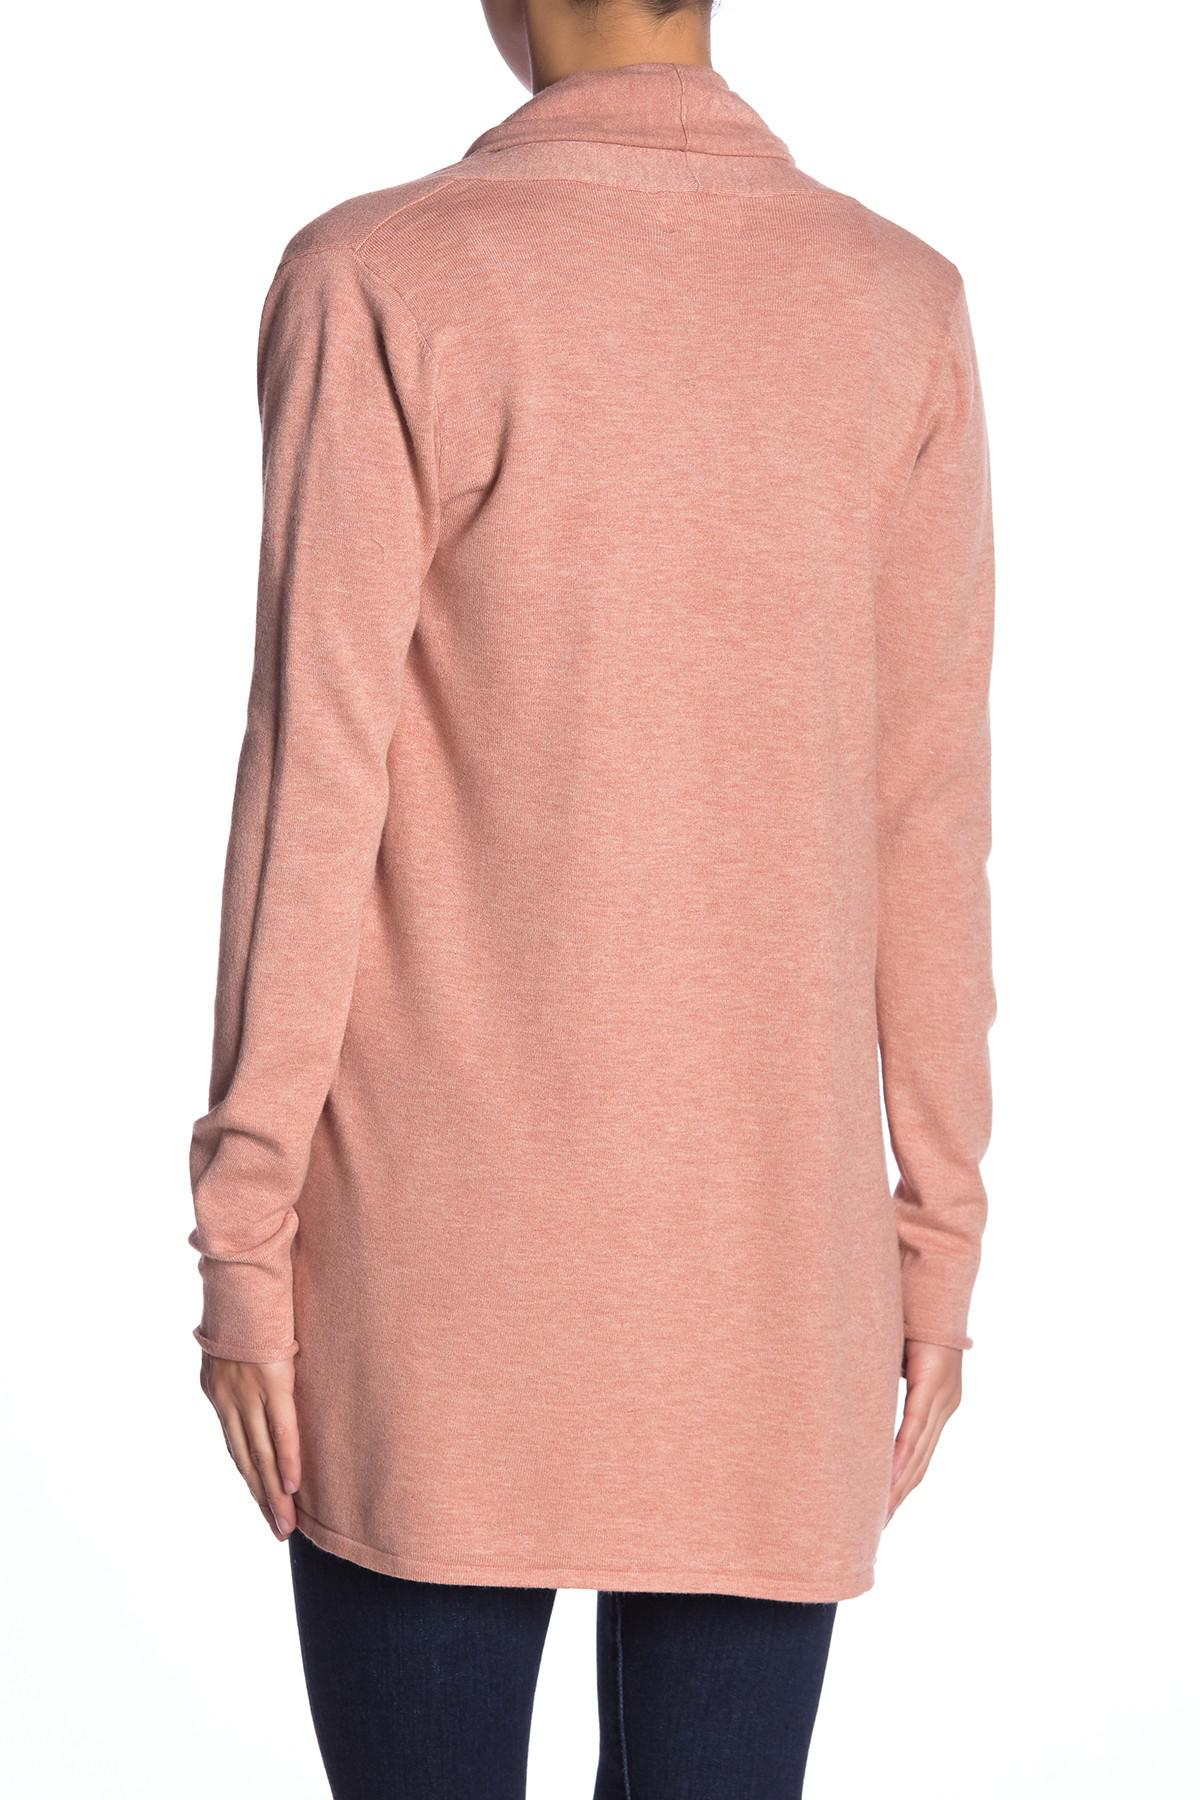 92dfc6fbb3 Lyst - Dreamers By Debut Open Front Lightweight Knit Cardigan in Pink